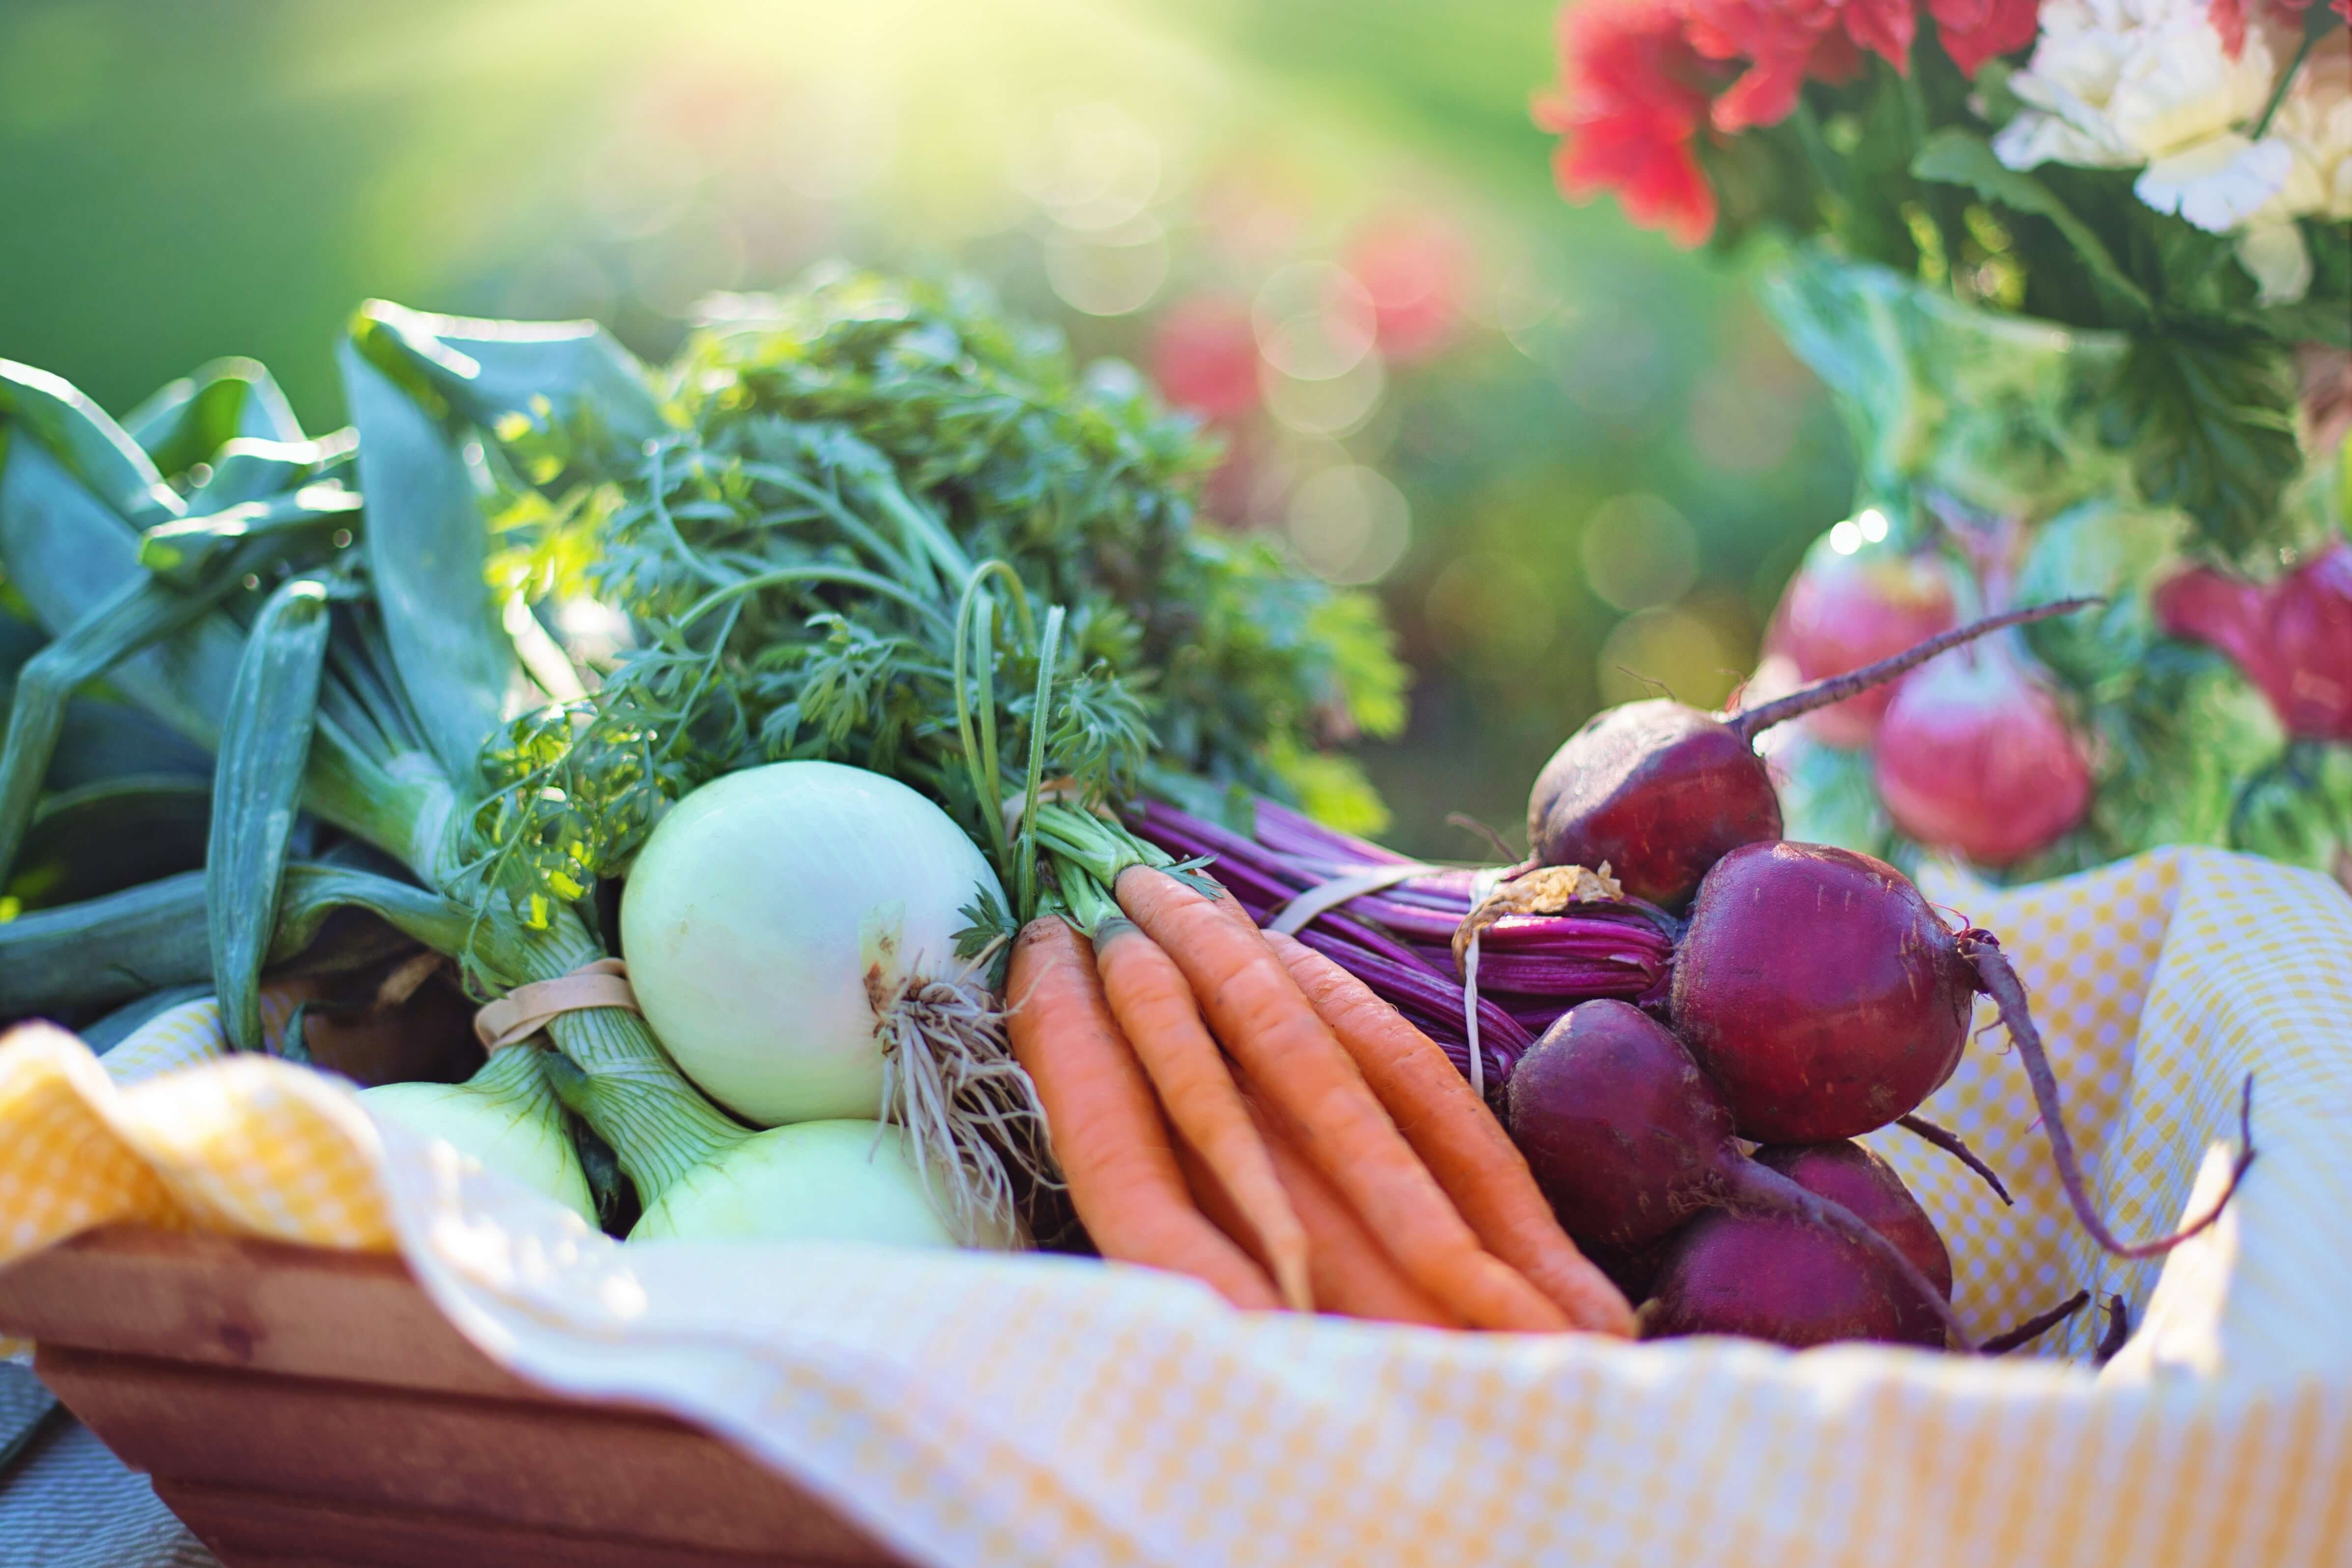 sustainably-grown-agriculture-basket